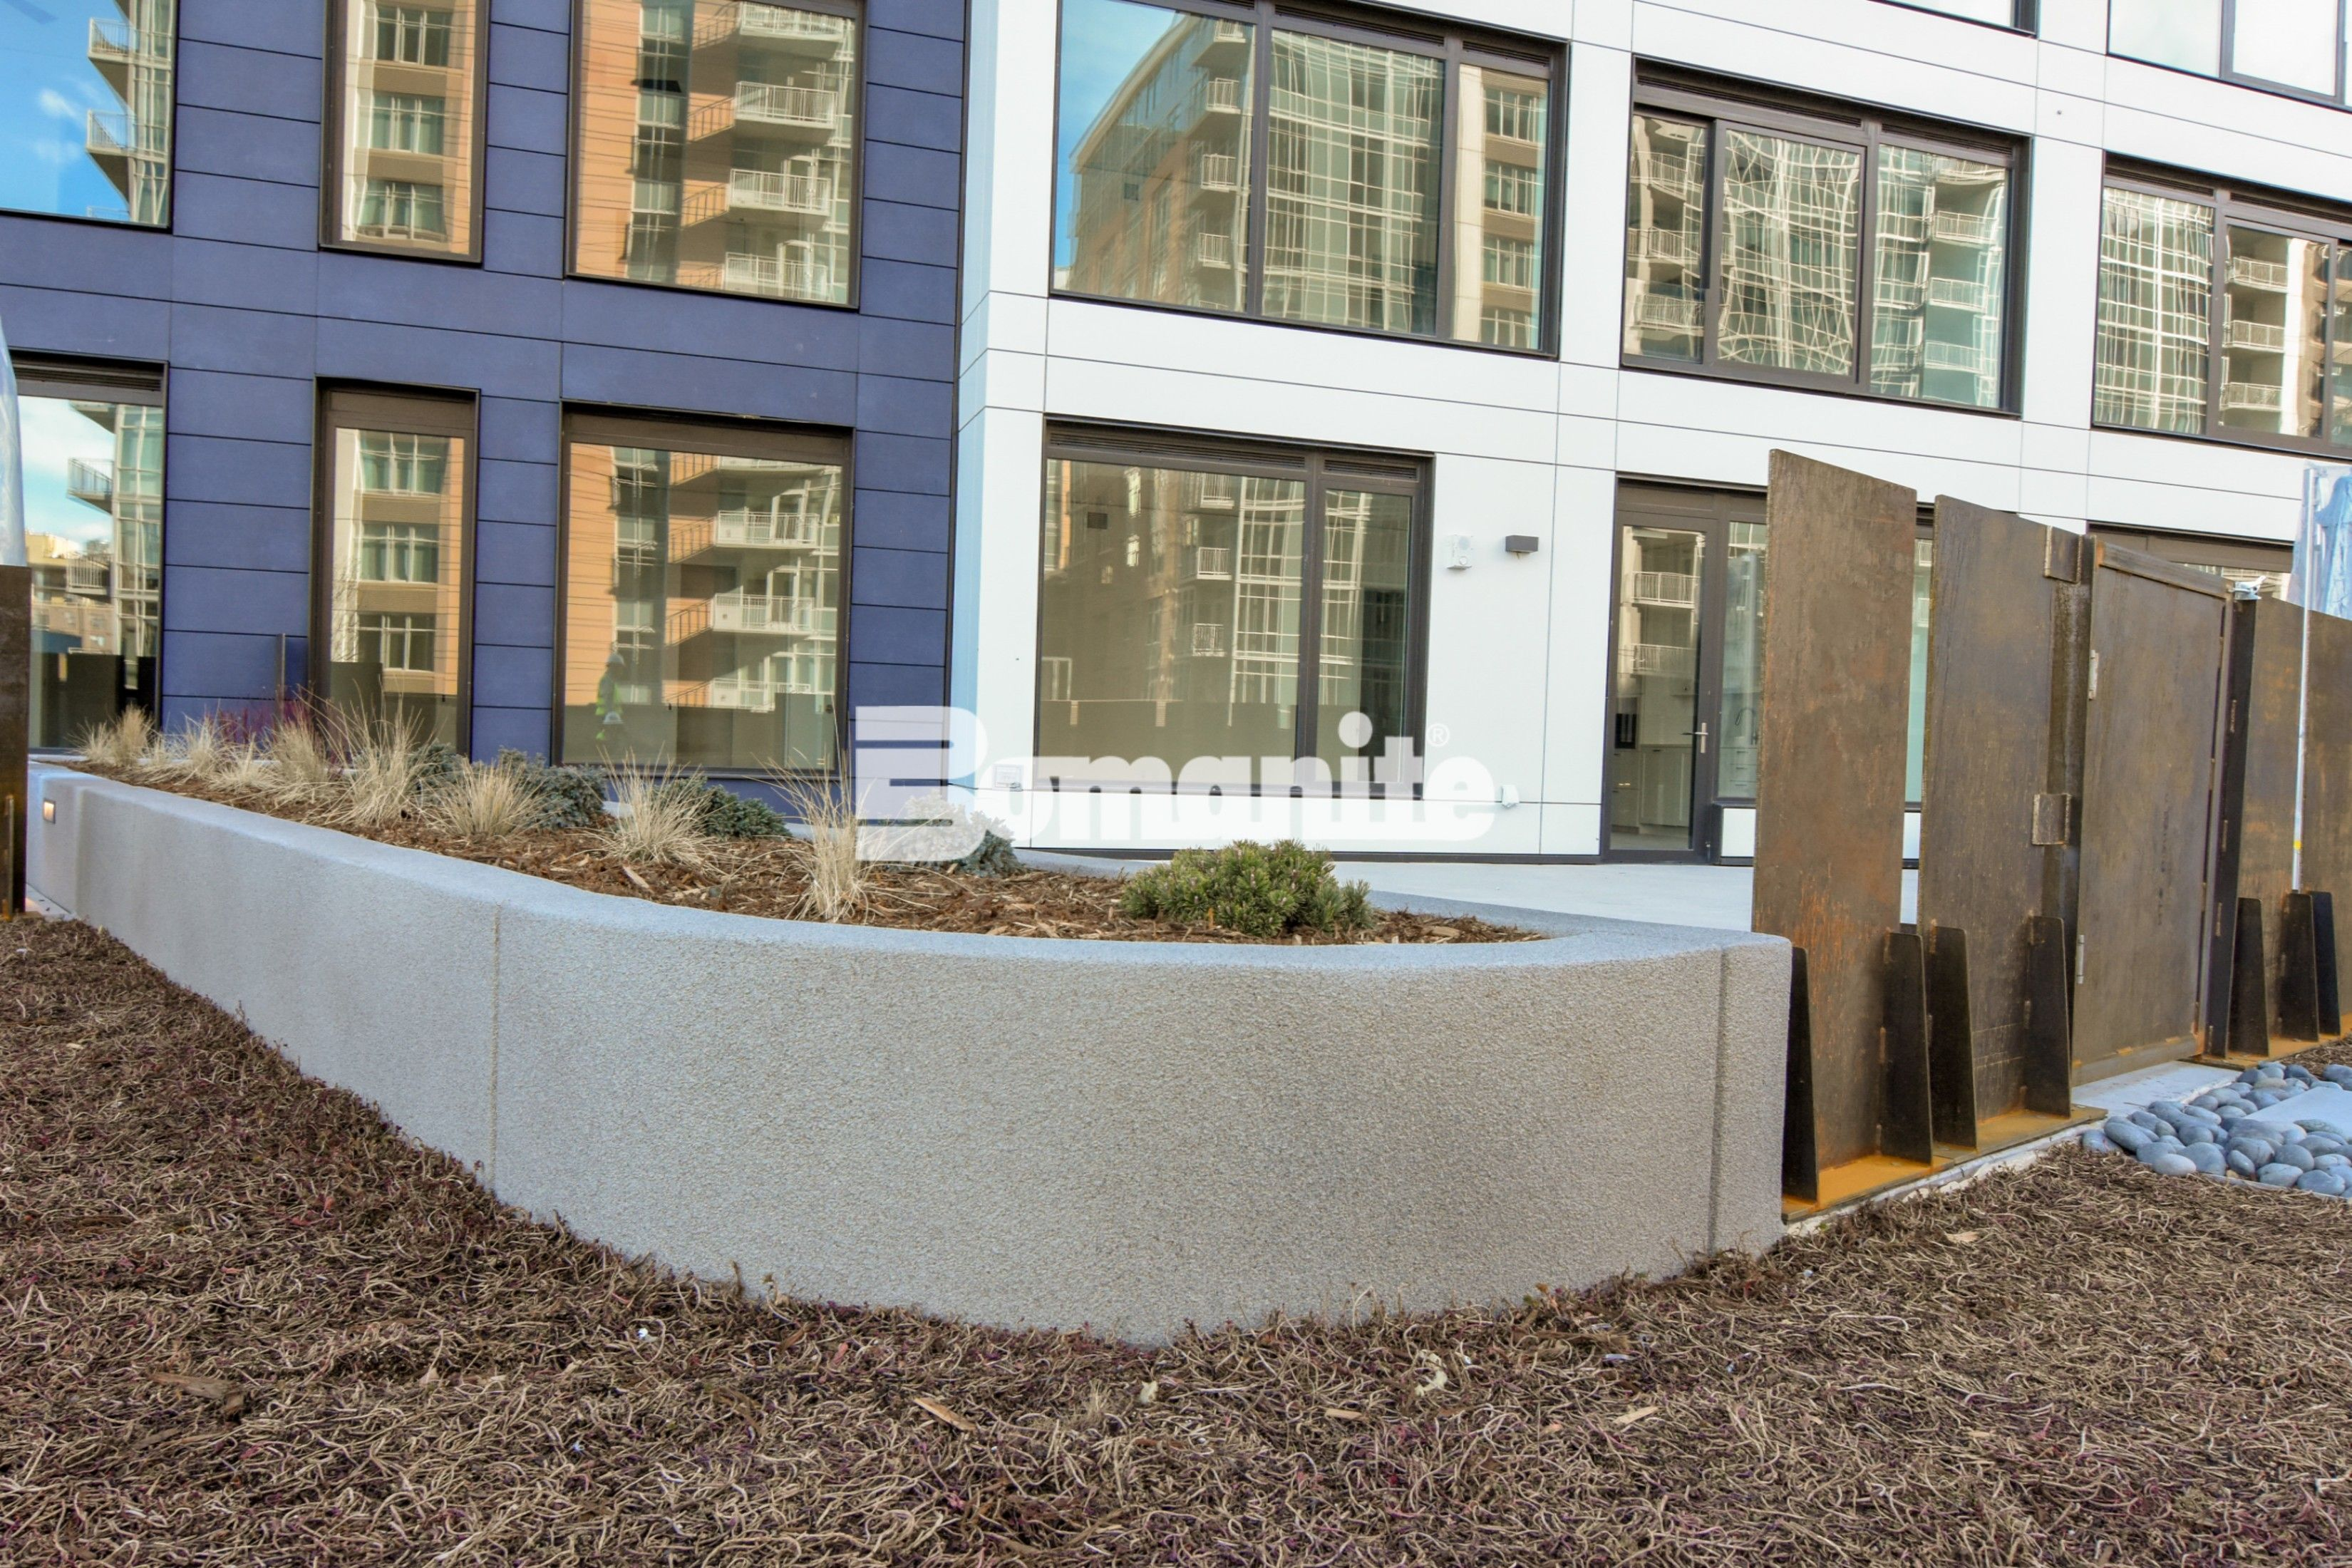 The Coloradan planters using Bomanite Toppings Systems with Bomanite Micro-Top ST and Sandscape finishes installed by Colorado Hardscapes in Denver, CO.